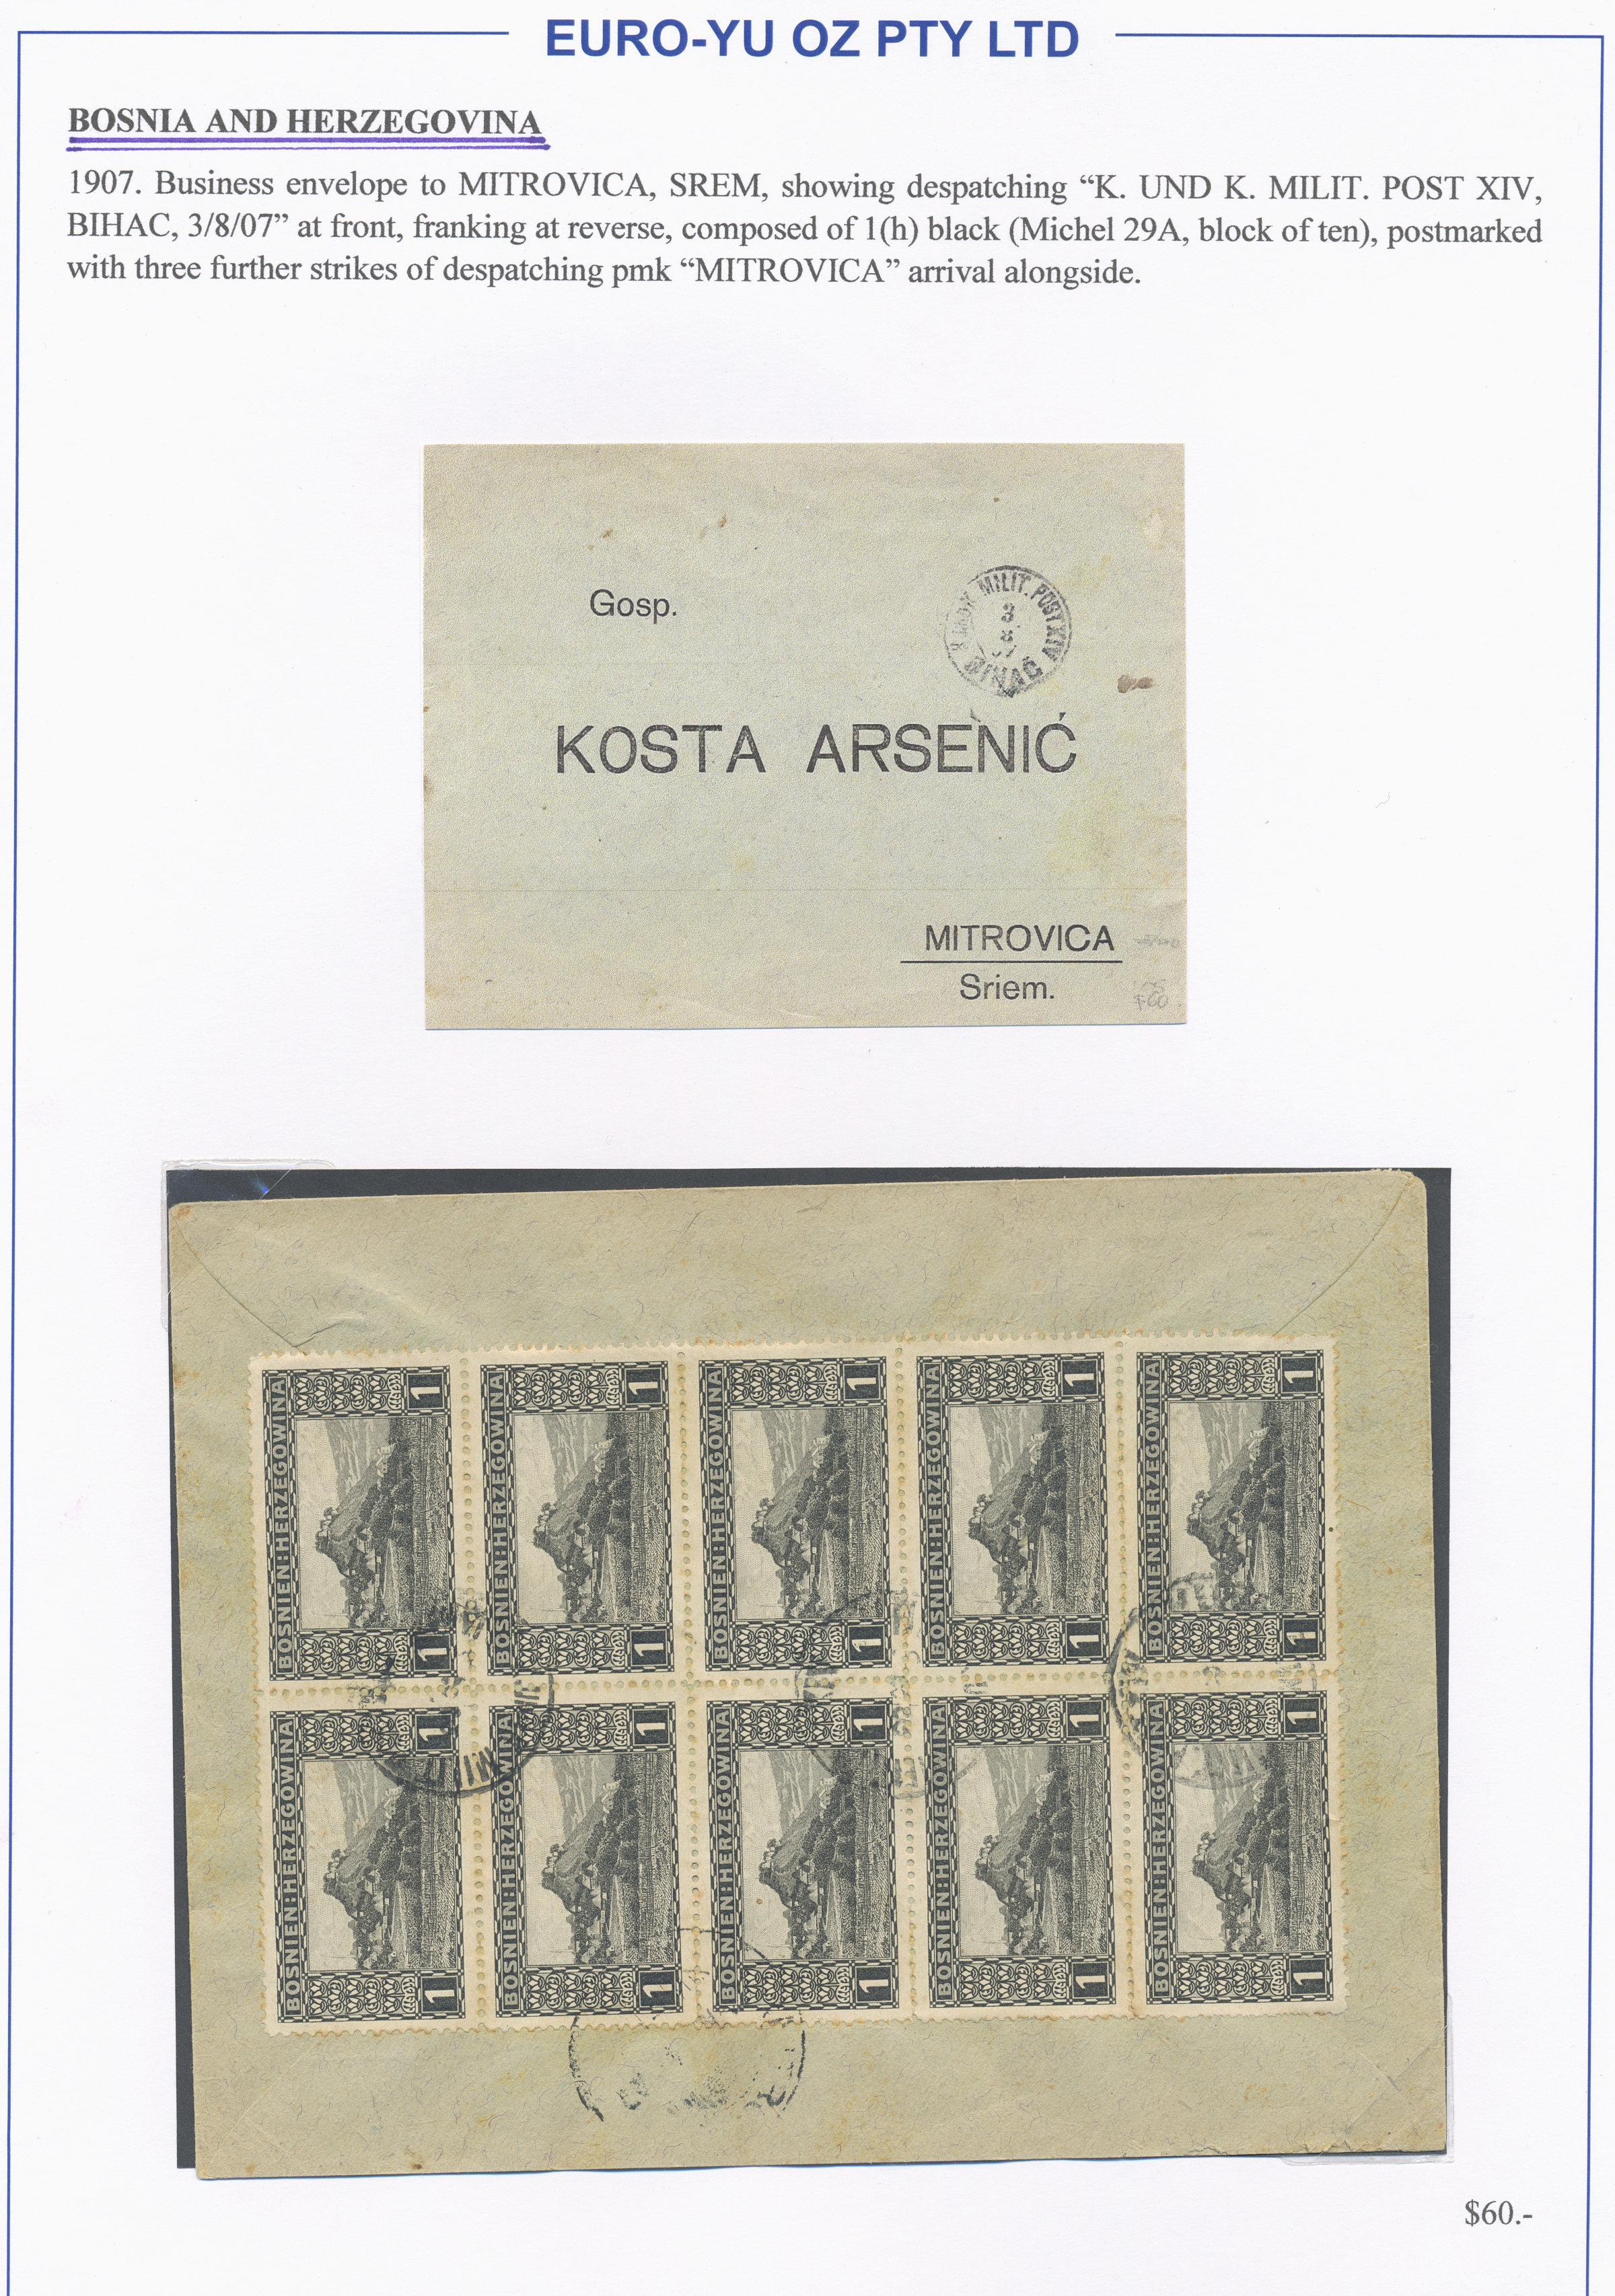 Lot 31350 - bosnien und herzegowina  -  Auktionshaus Christoph Gärtner GmbH & Co. KG Sale #44 Collections Overseas, Europe